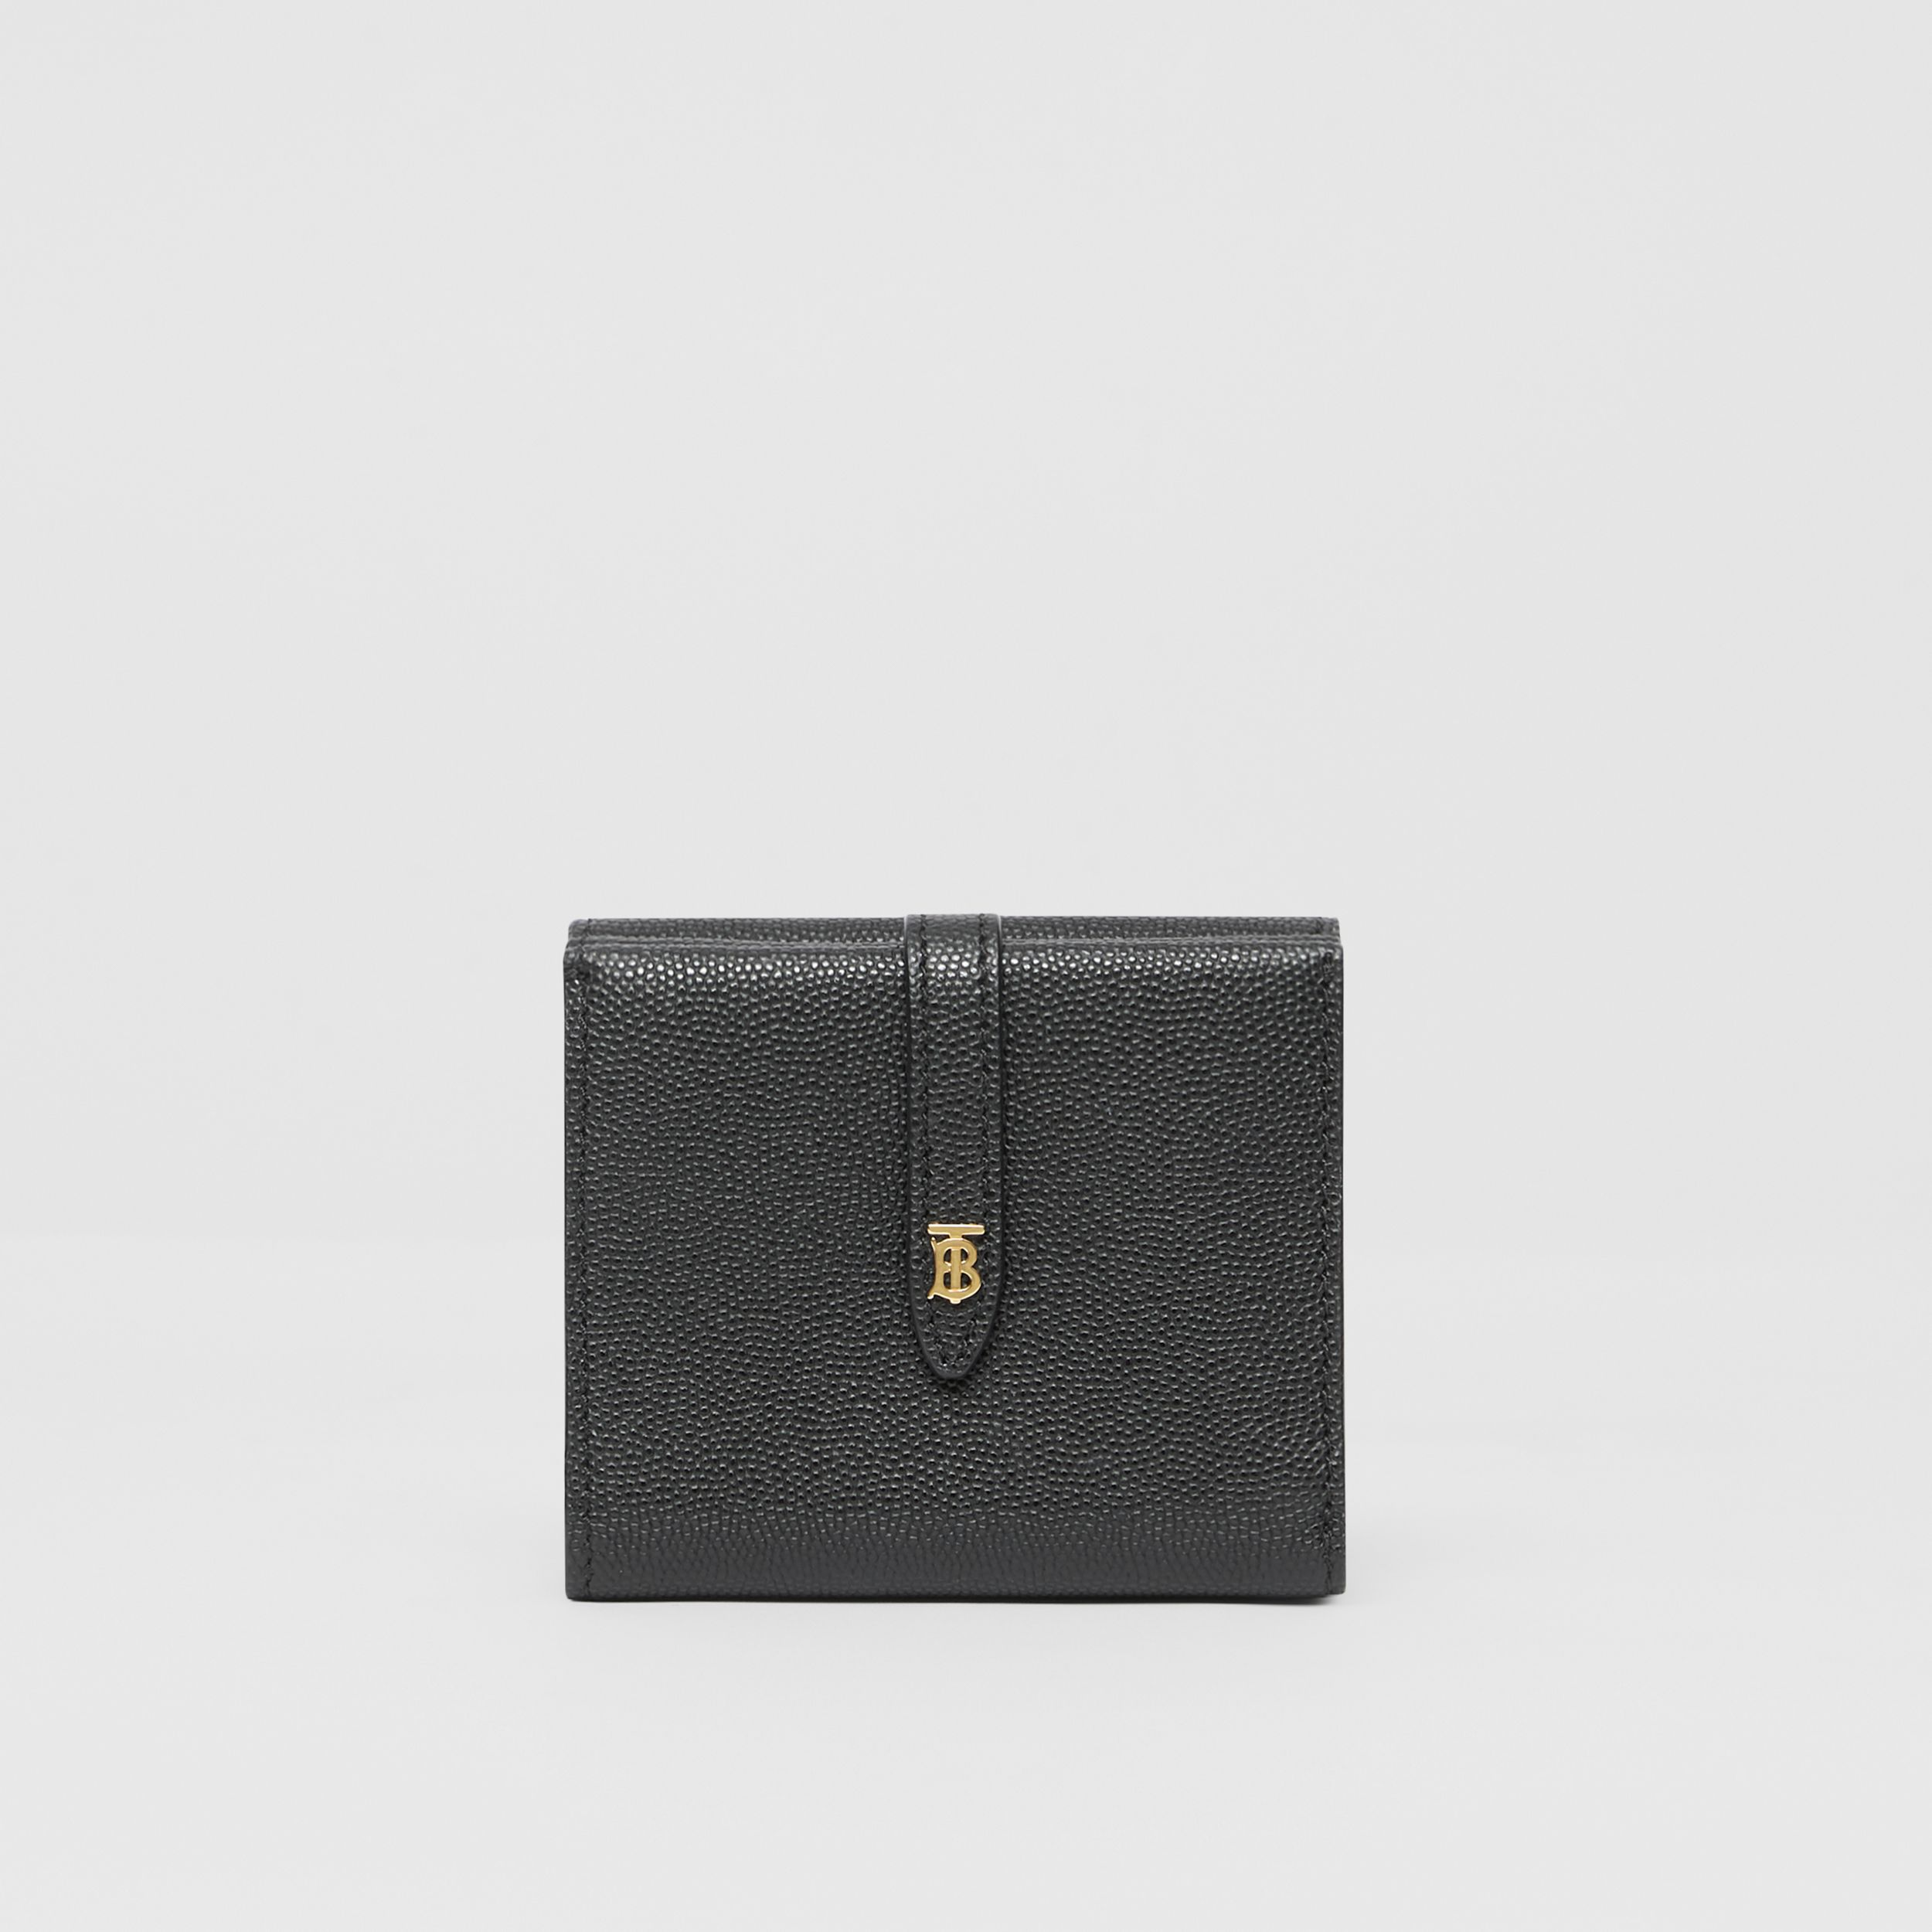 Monogram Motif Grainy Leather Folding Wallet in Black - Women | Burberry - 4